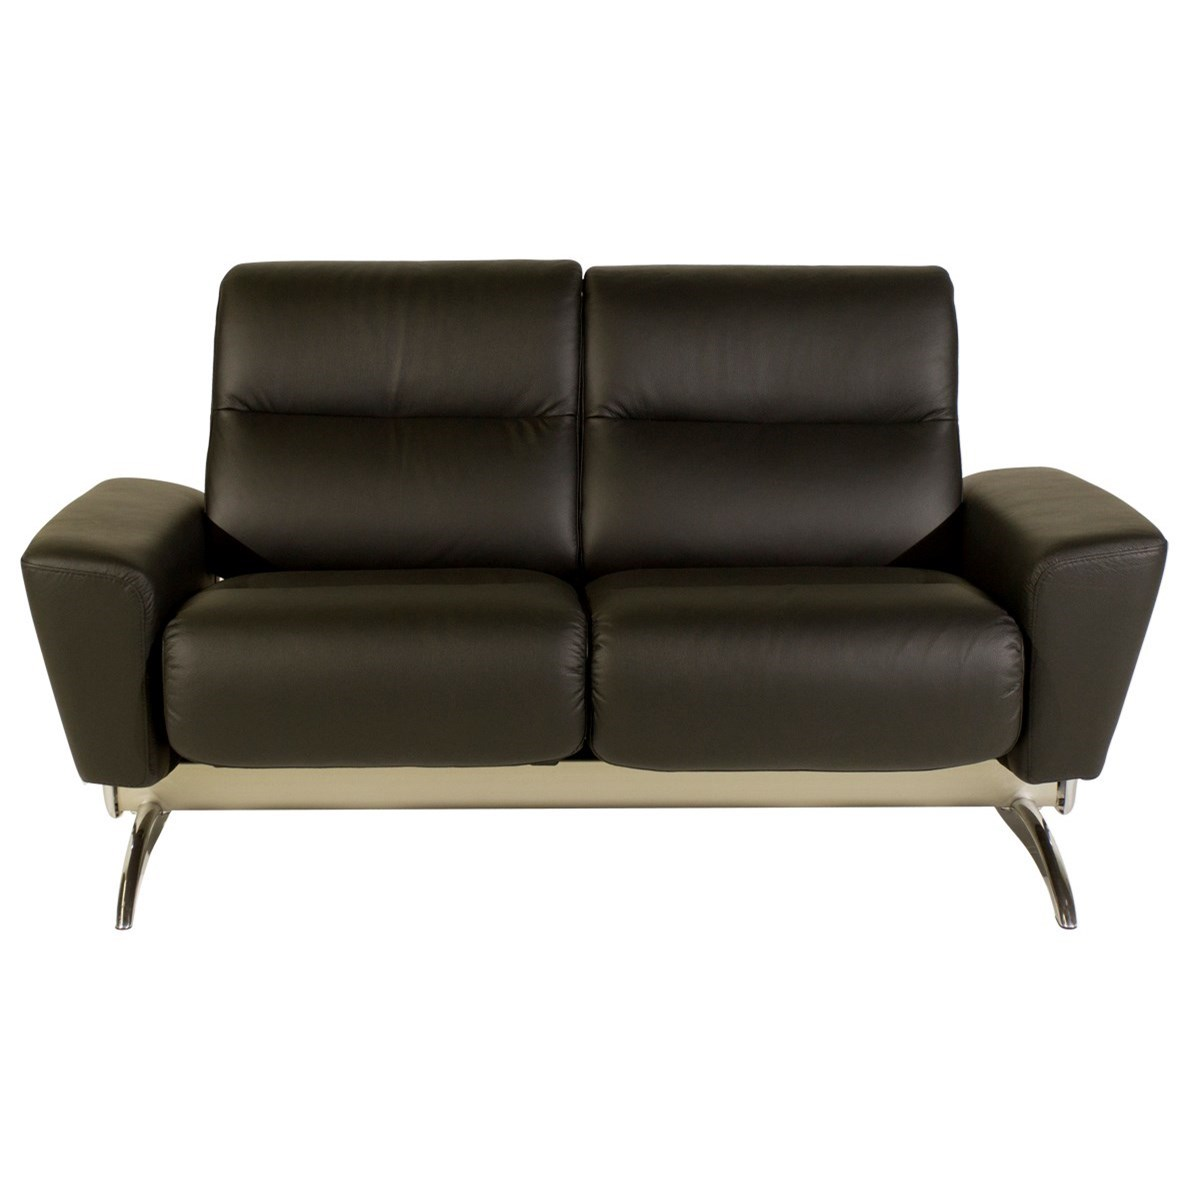 stressless stressless you julia 2 seater loveseat with balanceadapt fashion furniture love. Black Bedroom Furniture Sets. Home Design Ideas